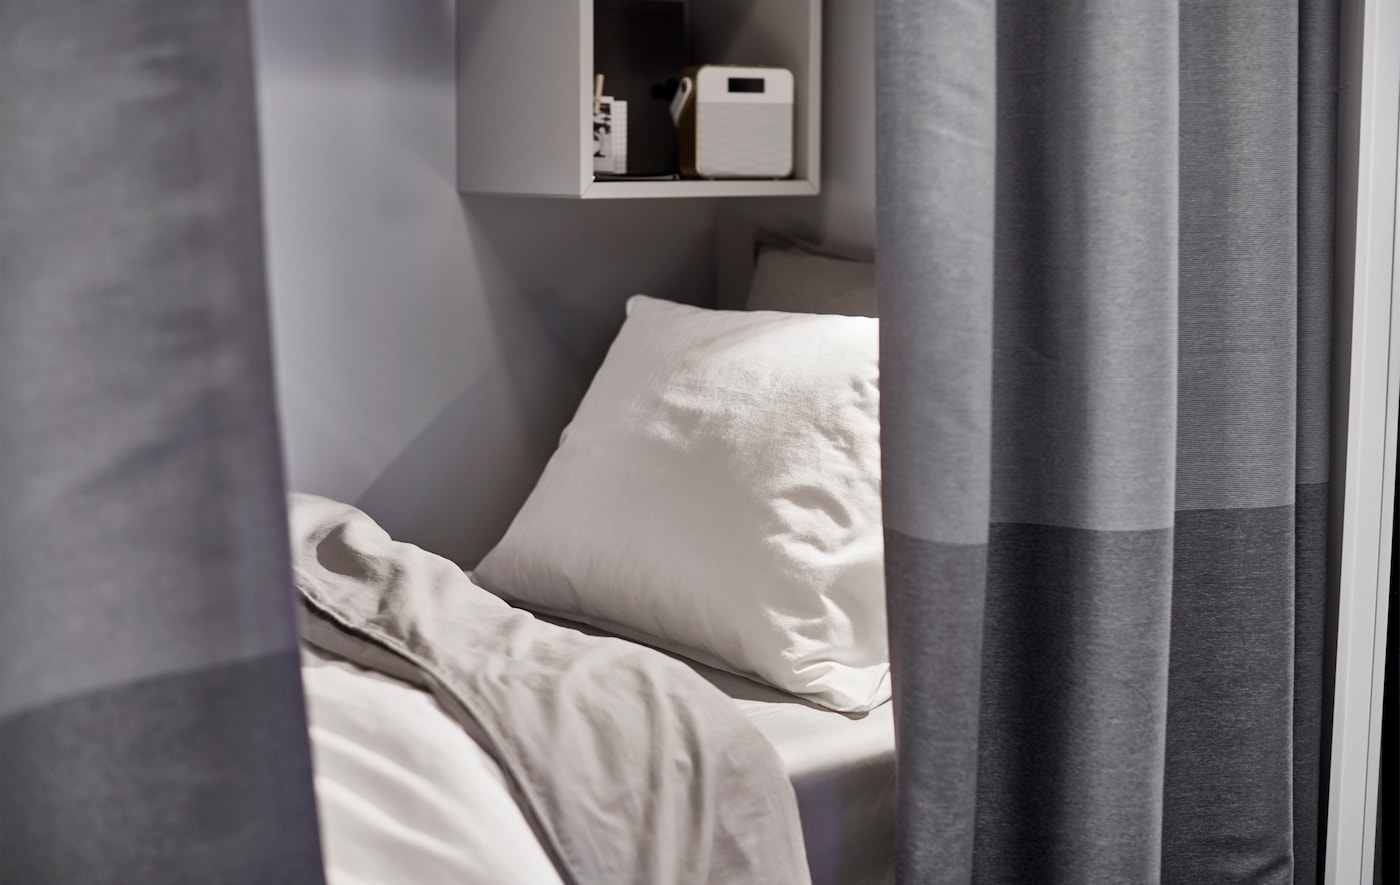 A bed is shown behind a curtain room divider.